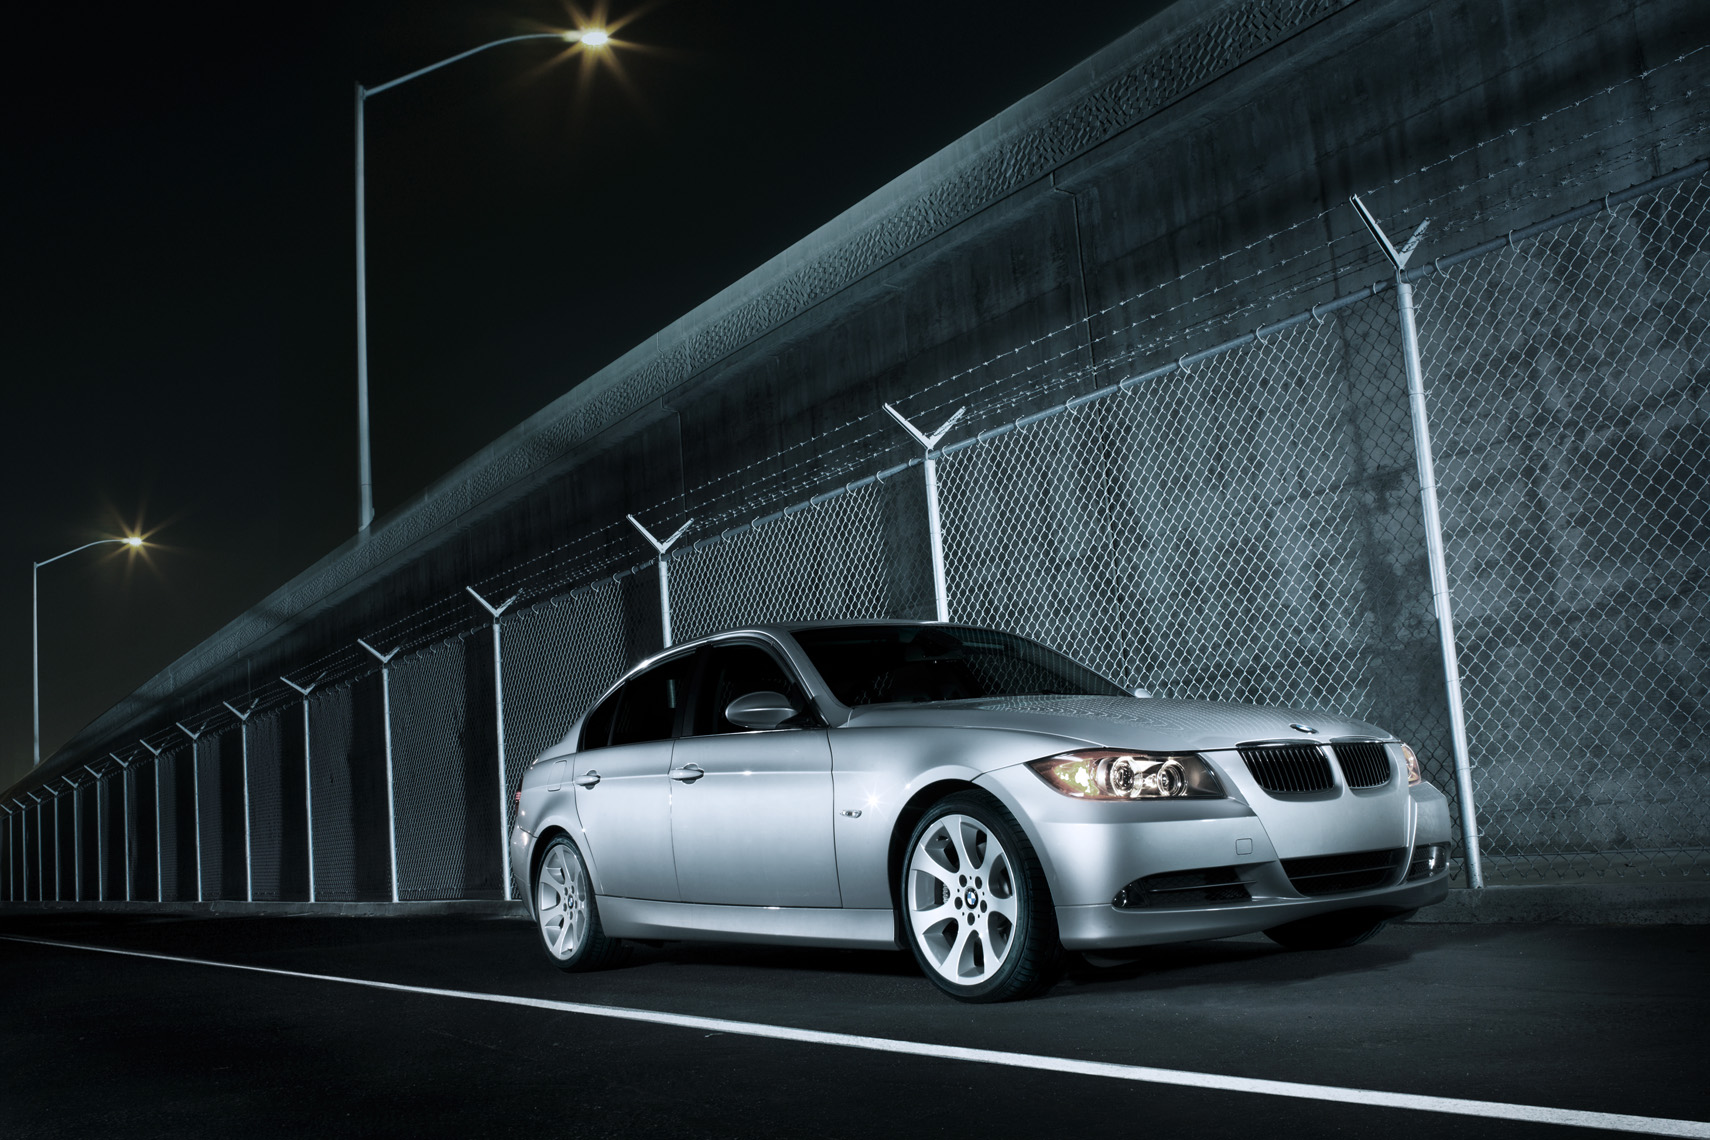 BMW 3 Series Jail Break 02-2009-DUP.jpg